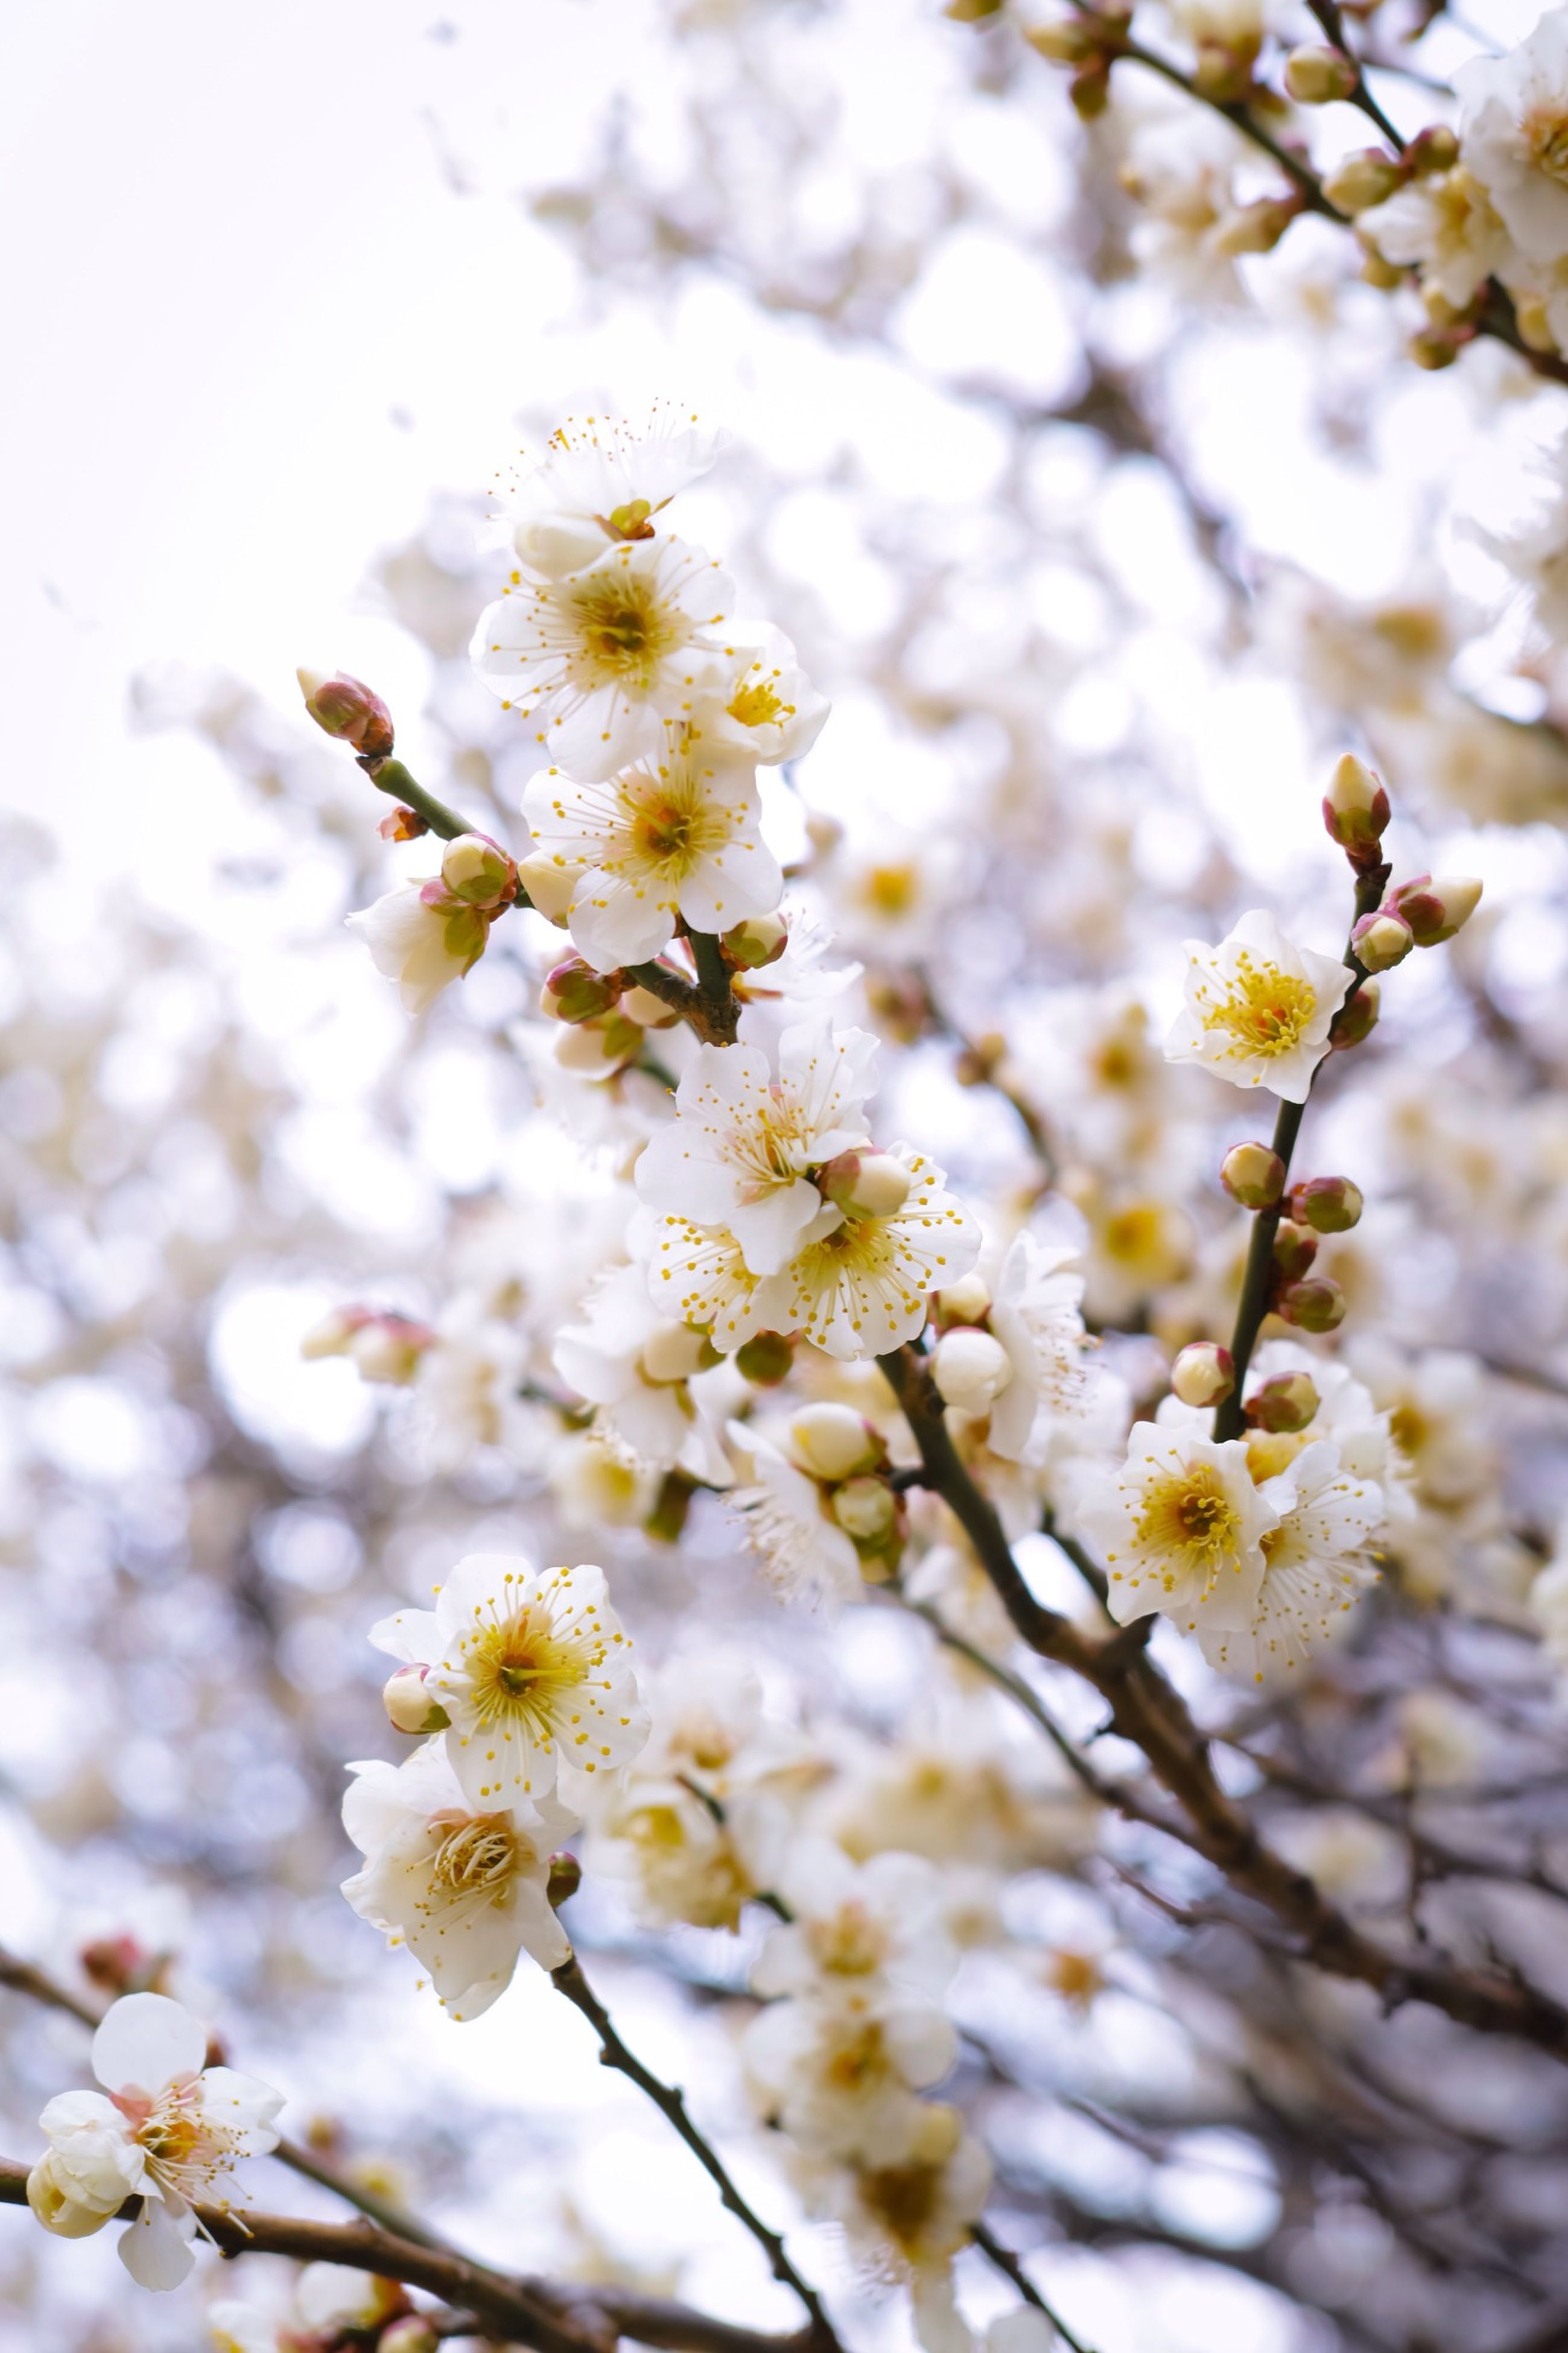 flower, freshness, growth, fragility, white color, branch, tree, beauty in nature, nature, blossom, petal, cherry blossom, blooming, focus on foreground, close-up, in bloom, springtime, flower head, season, low angle view